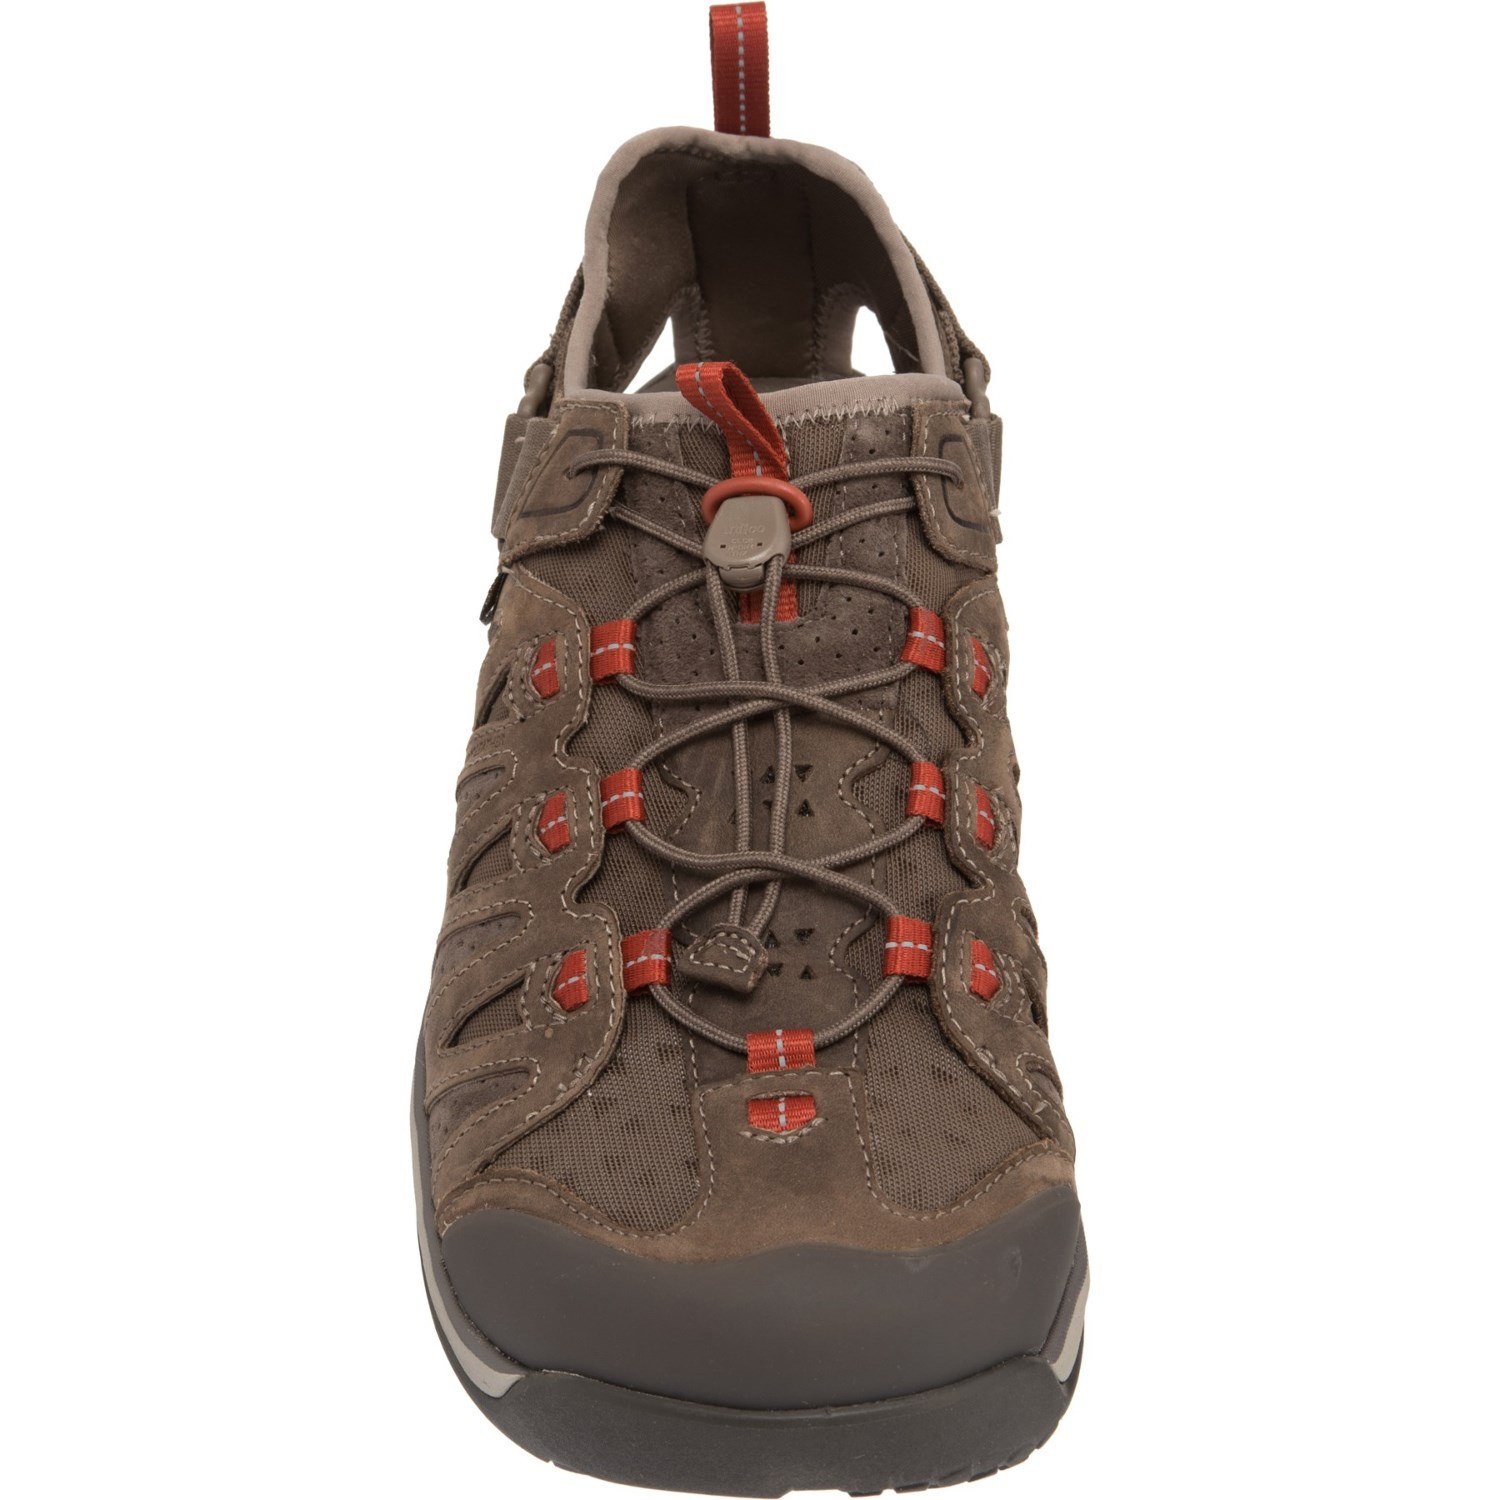 8b11e18ad21972 Teva Terra-Float Active Lace Water Shoes (For Men) - Save 68%